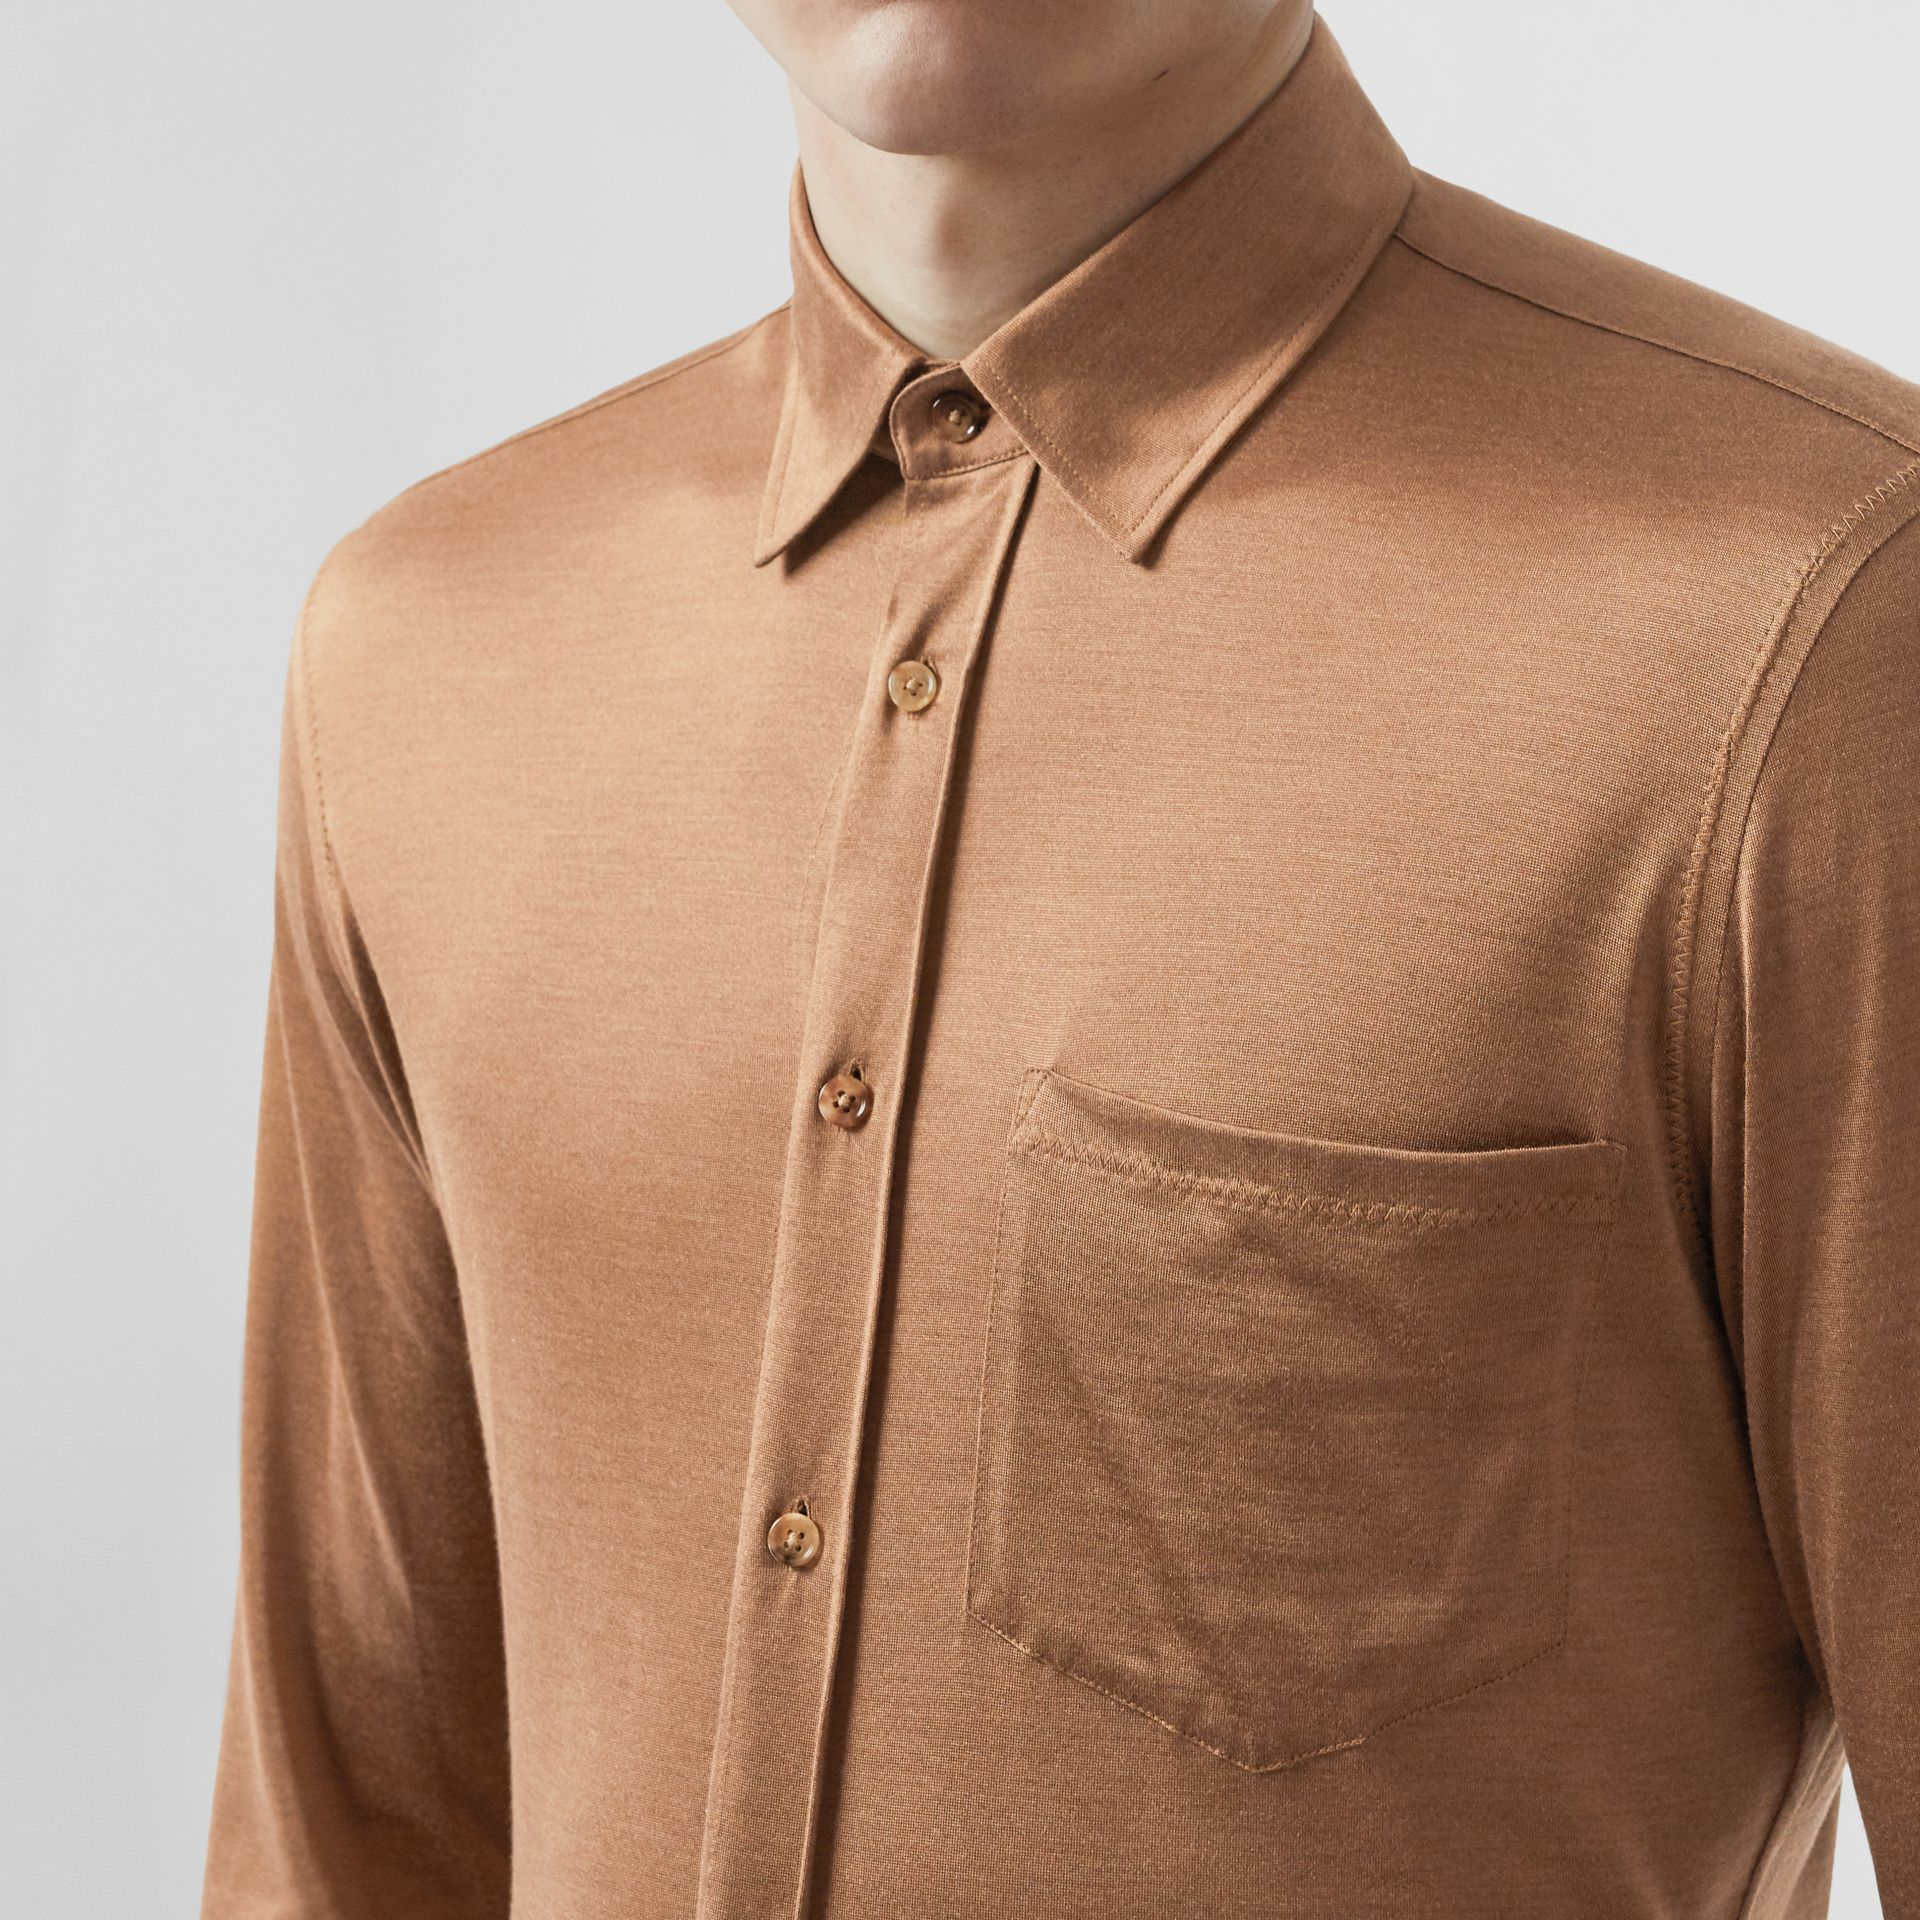 Classic Fit Silk Jersey Shirt in Warm Camel - Men | Burberry Singapore - gallery image 1